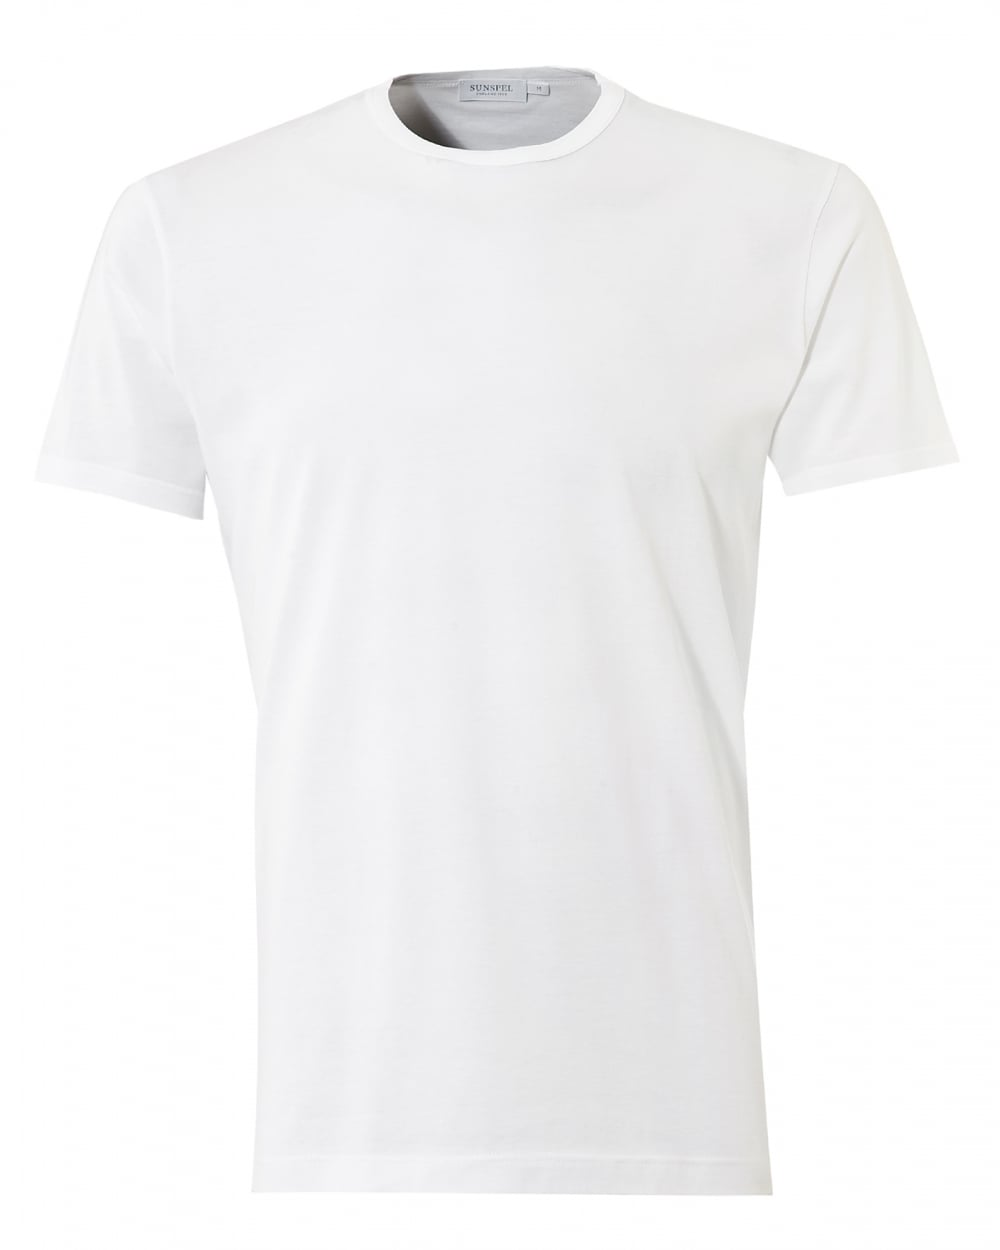 Cover your body with amazing Plain White t-shirts from Zazzle. Search for your new favorite shirt from thousands of great designs!